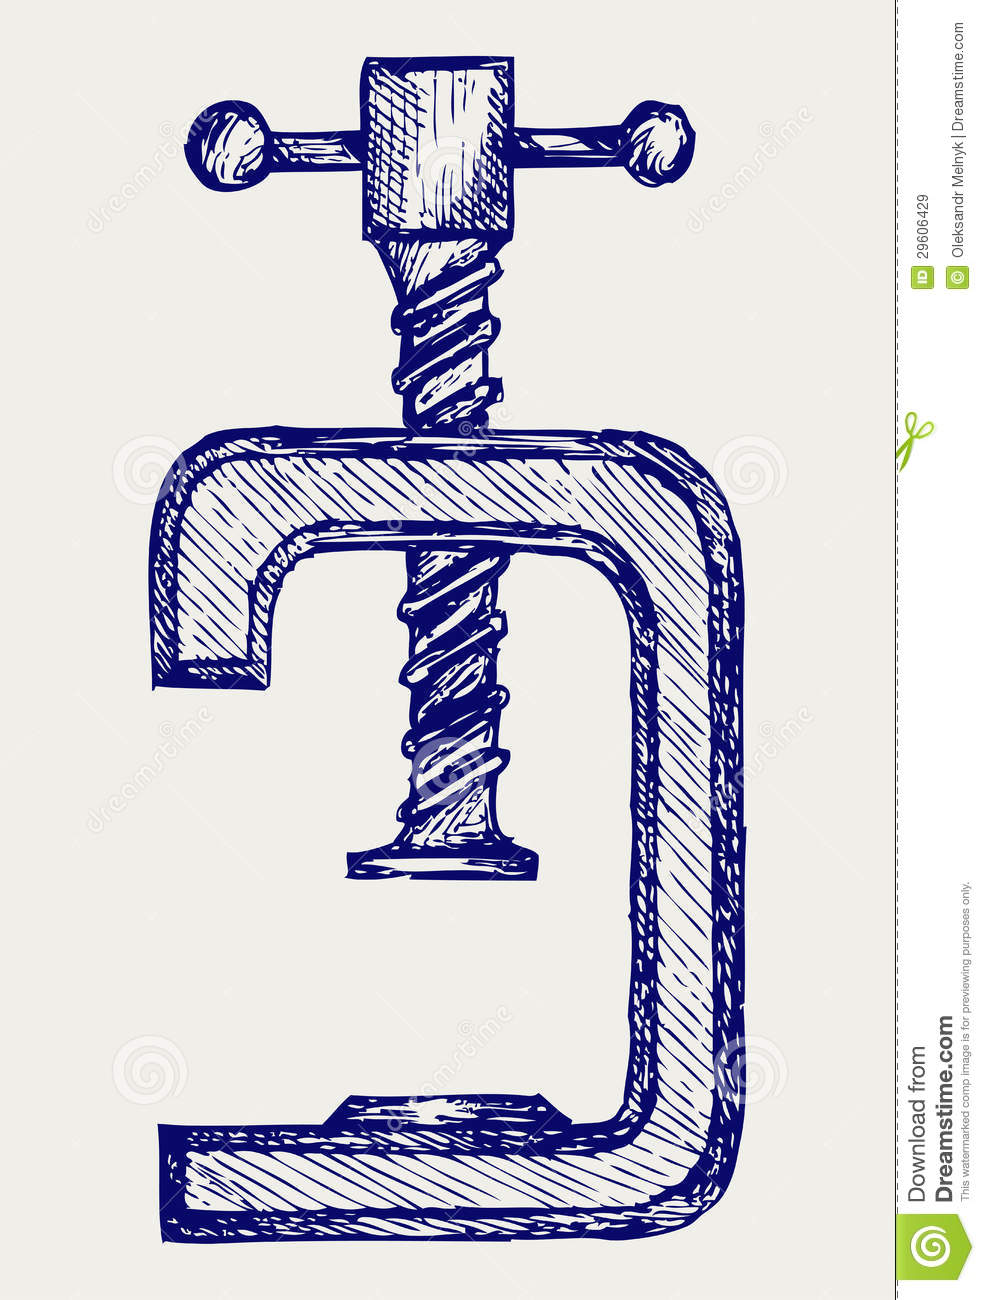 Vise. Doodle Style Royalty Free Stock Images.